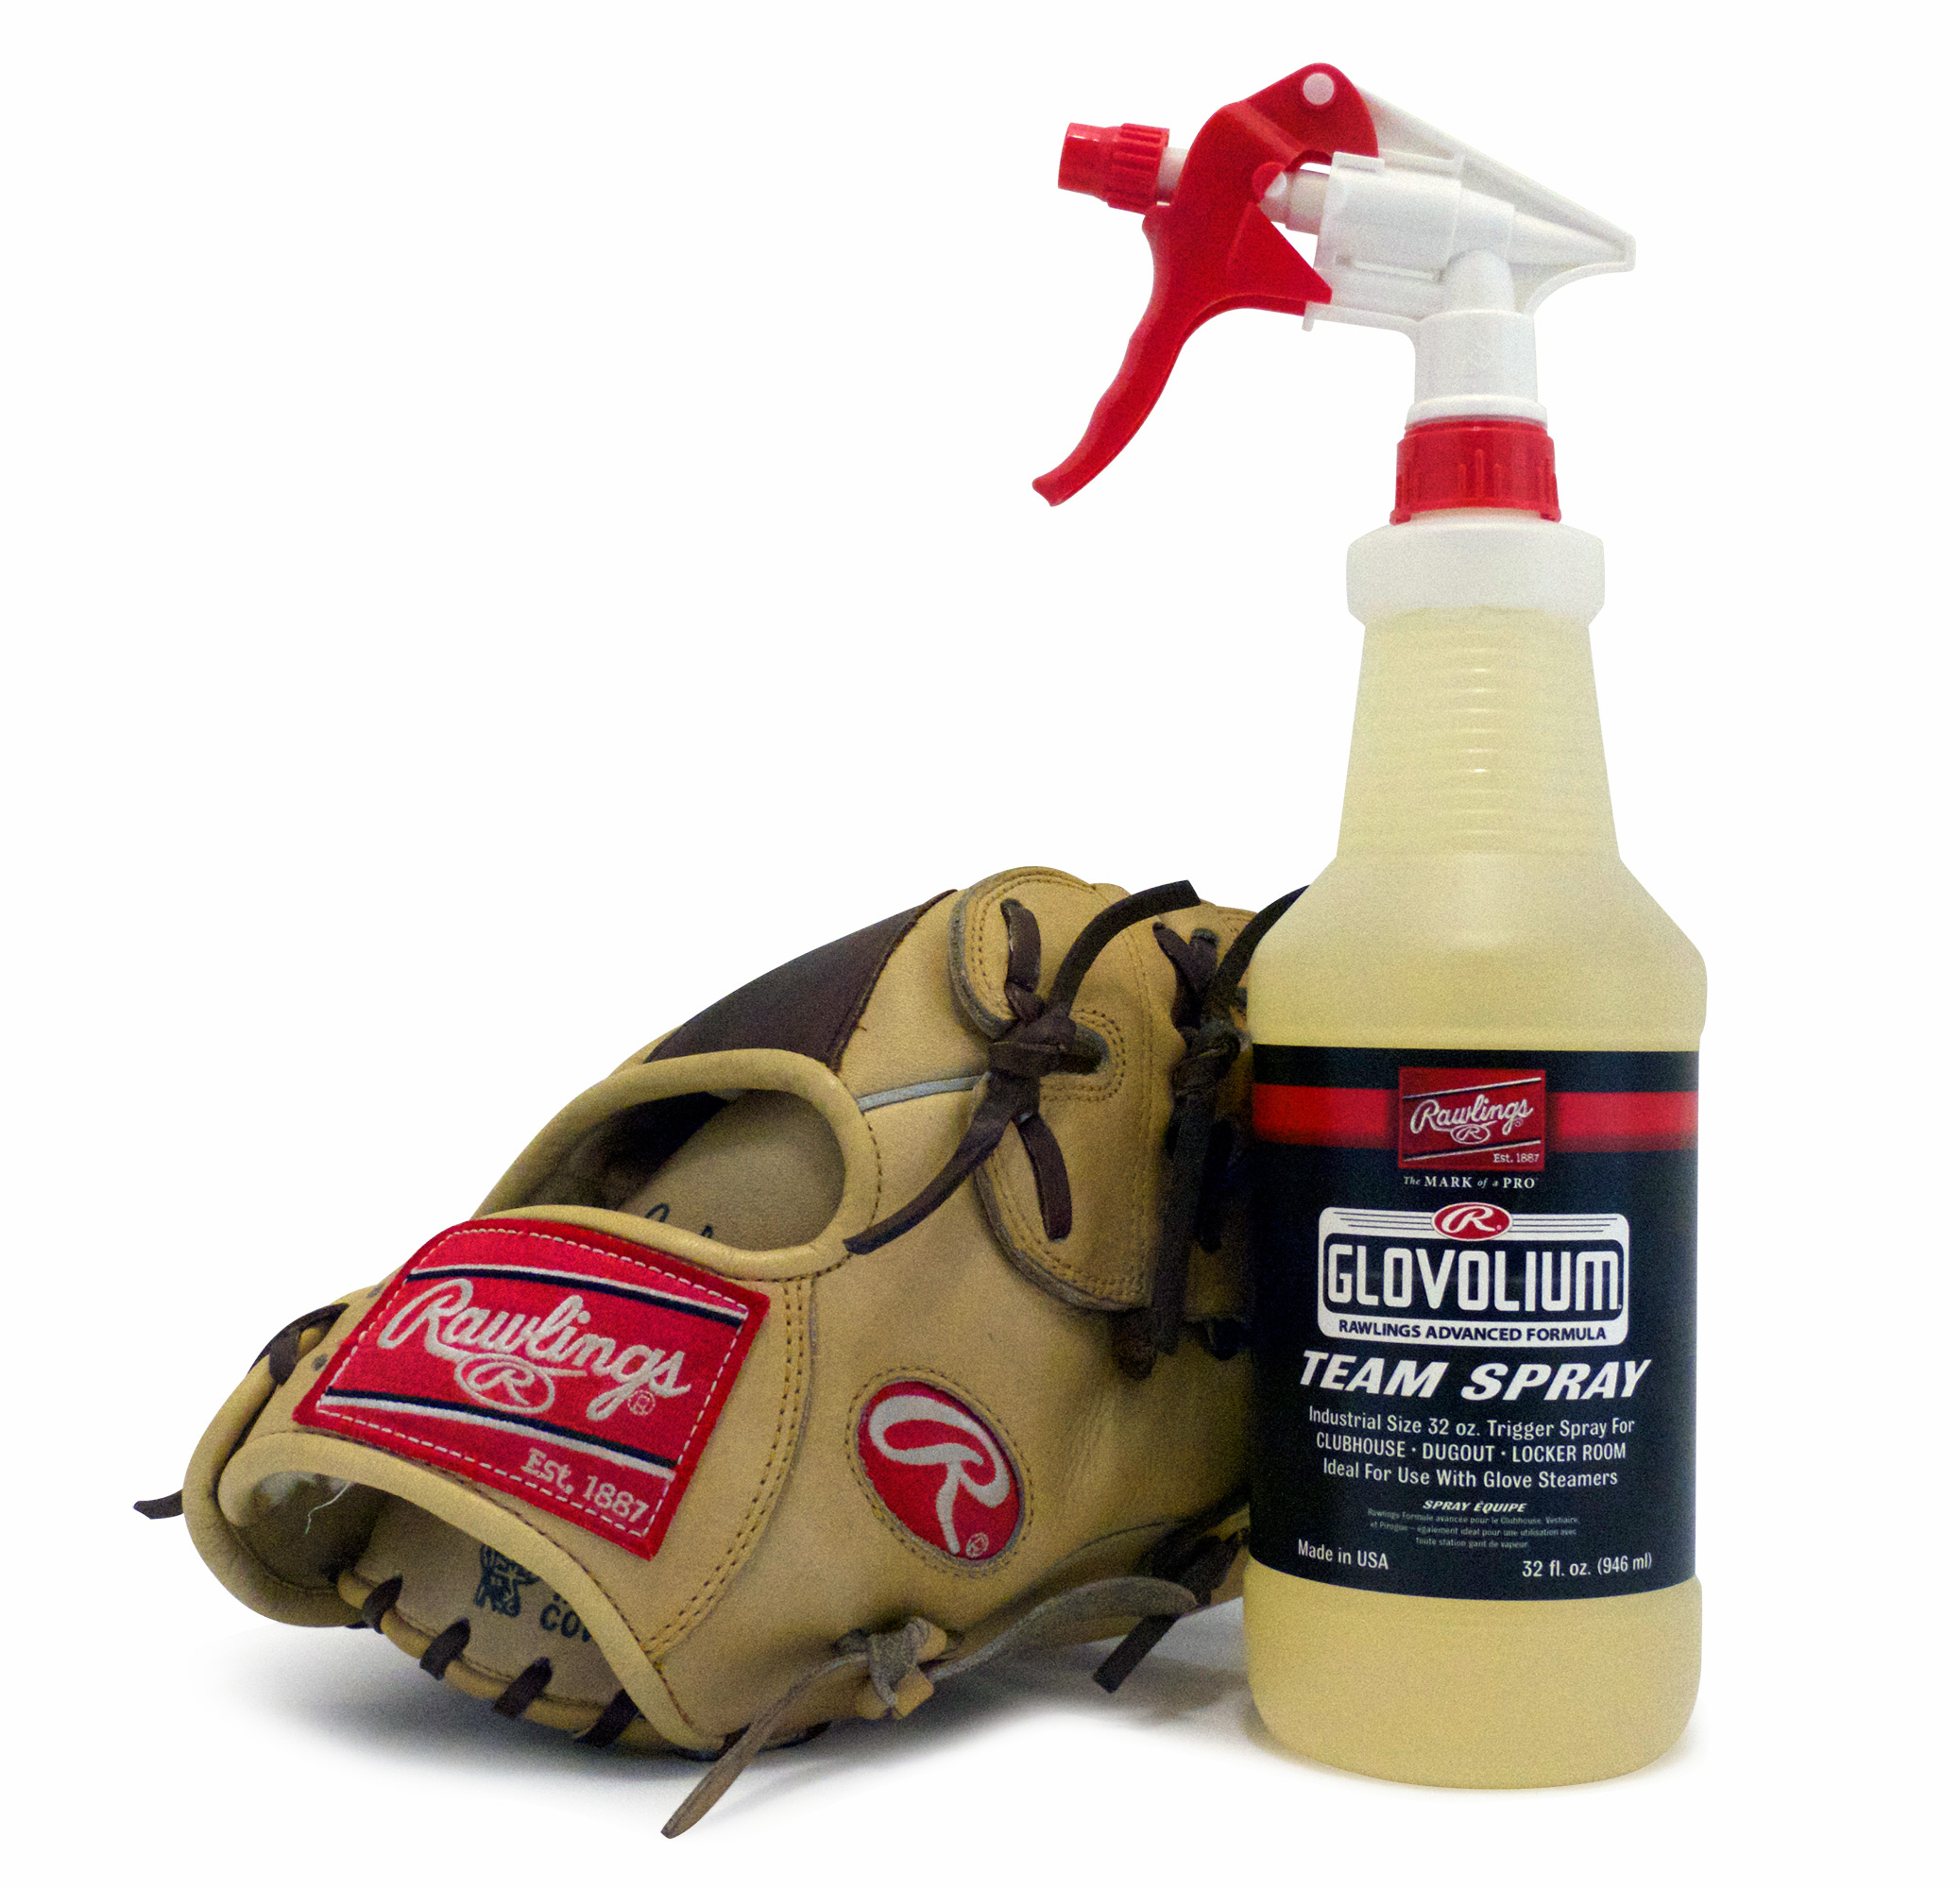 Rawlings baseball accessories